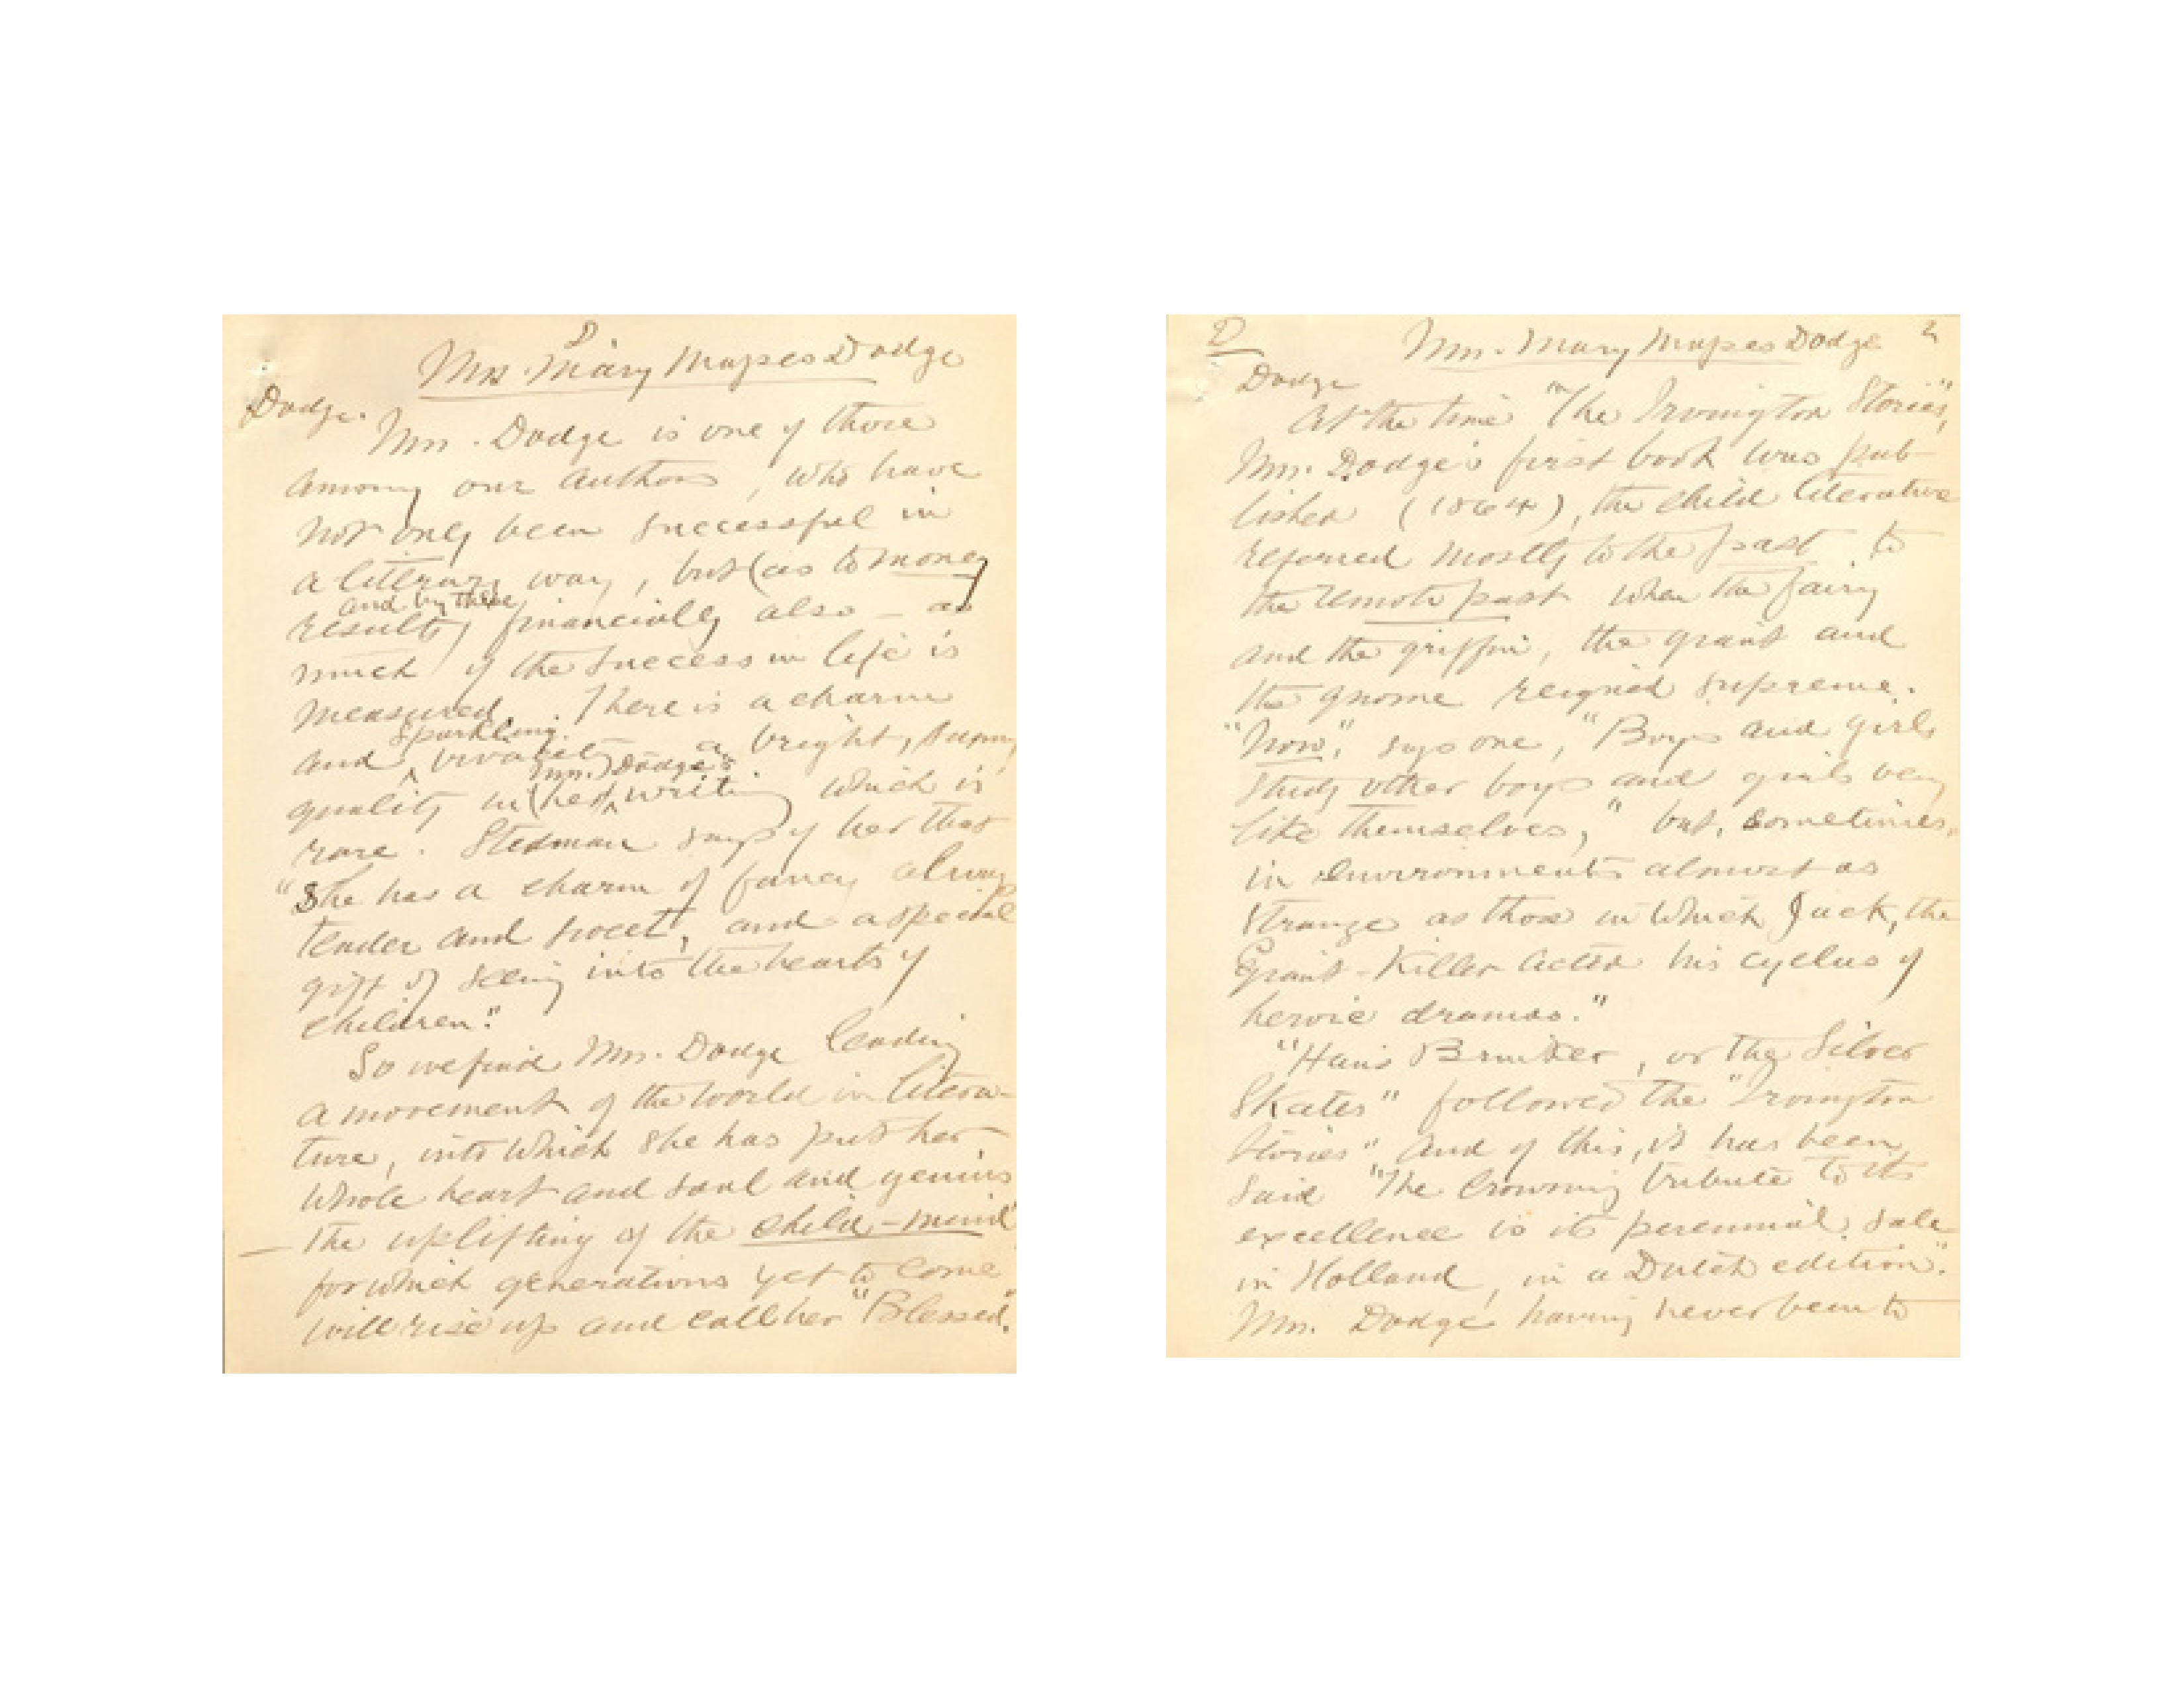 Julia Keese Nelson Colles' manuscript about Newark author Mary Mapes Dodge, 1892. Image courtesy of the New Jersey Historical Society, Newark, NJ